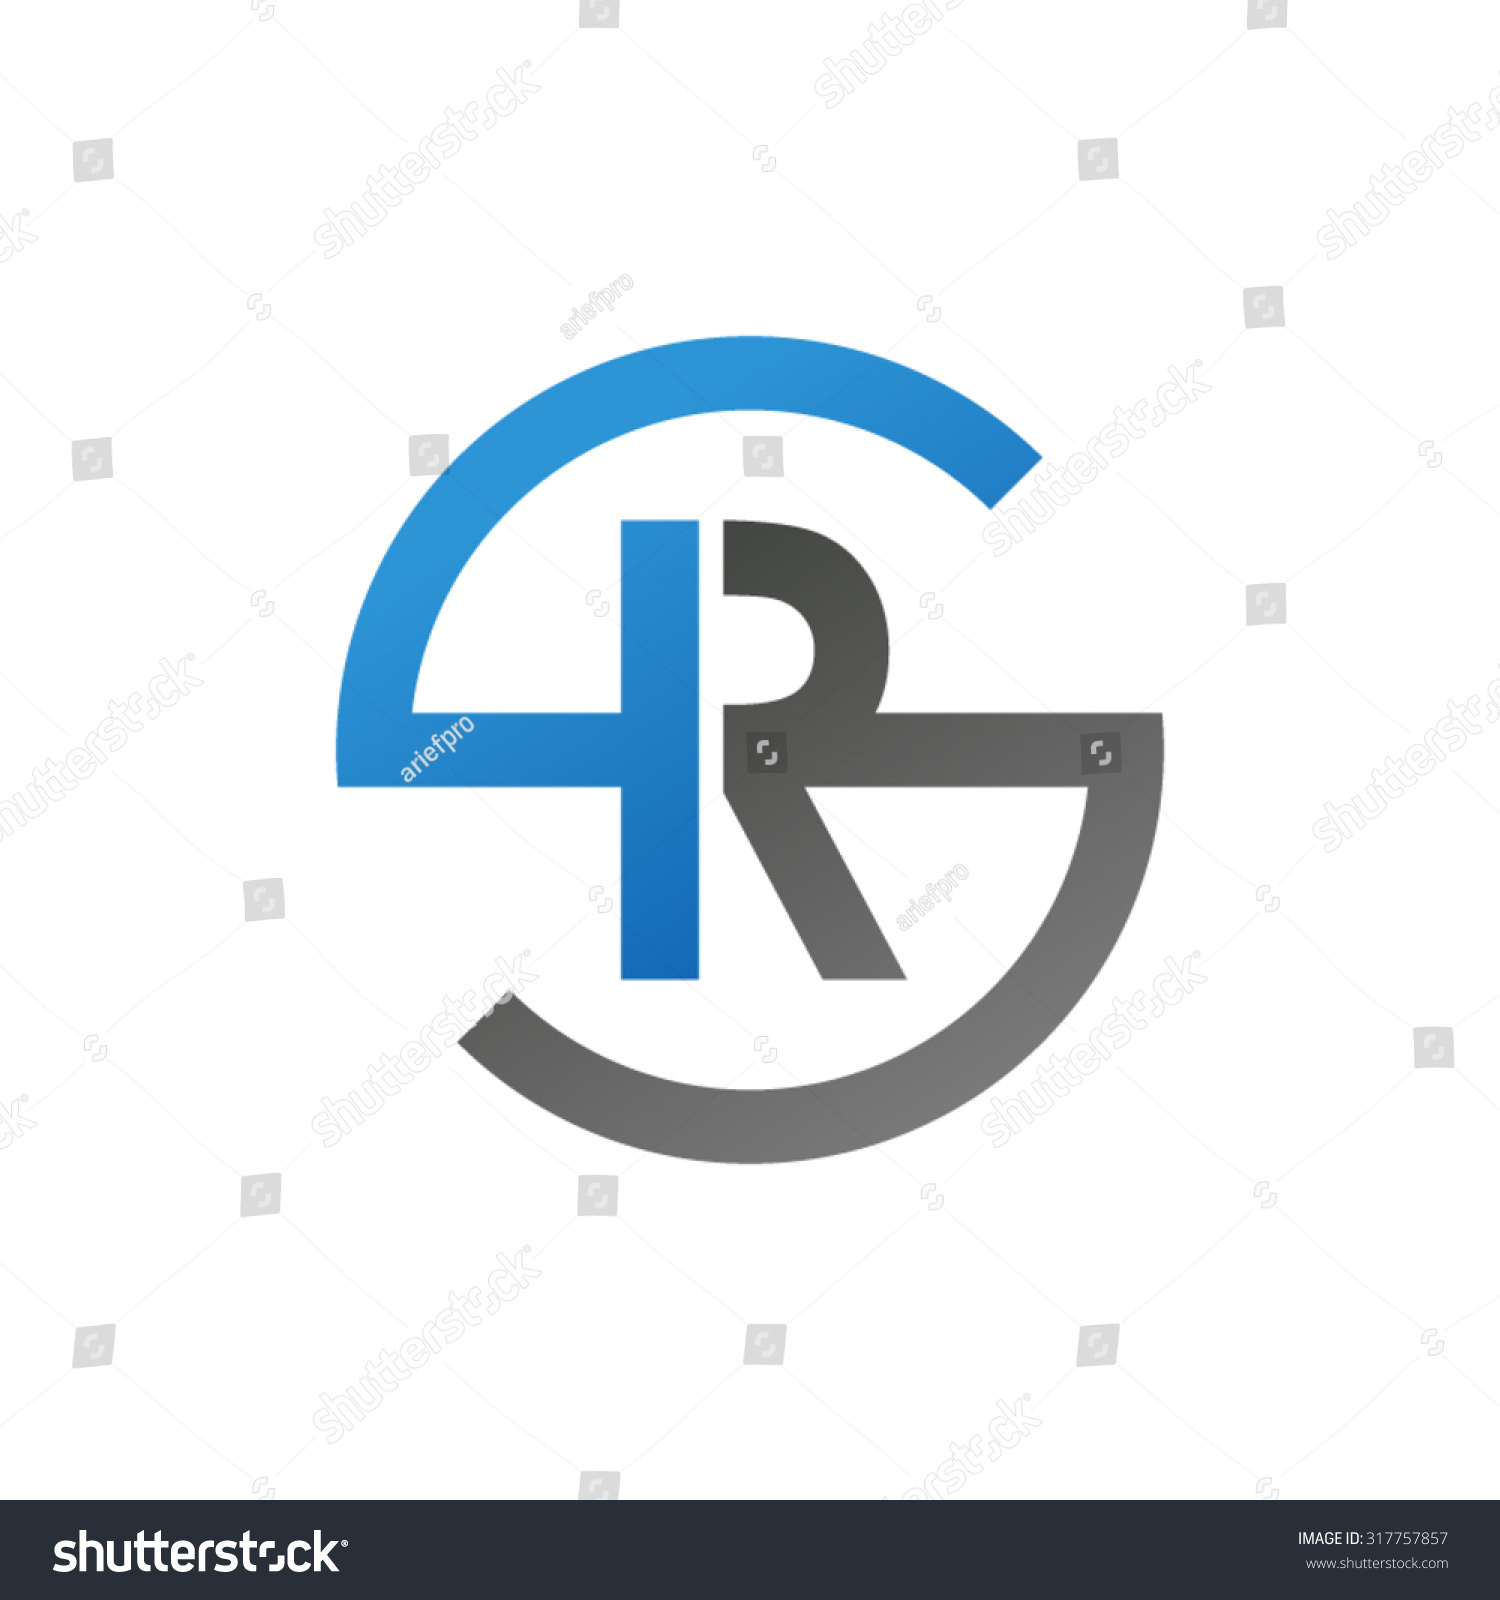 Rs sr initial company circle s stock vector 317757857 shutterstock rs sr initial company circle s logo blue buycottarizona Image collections